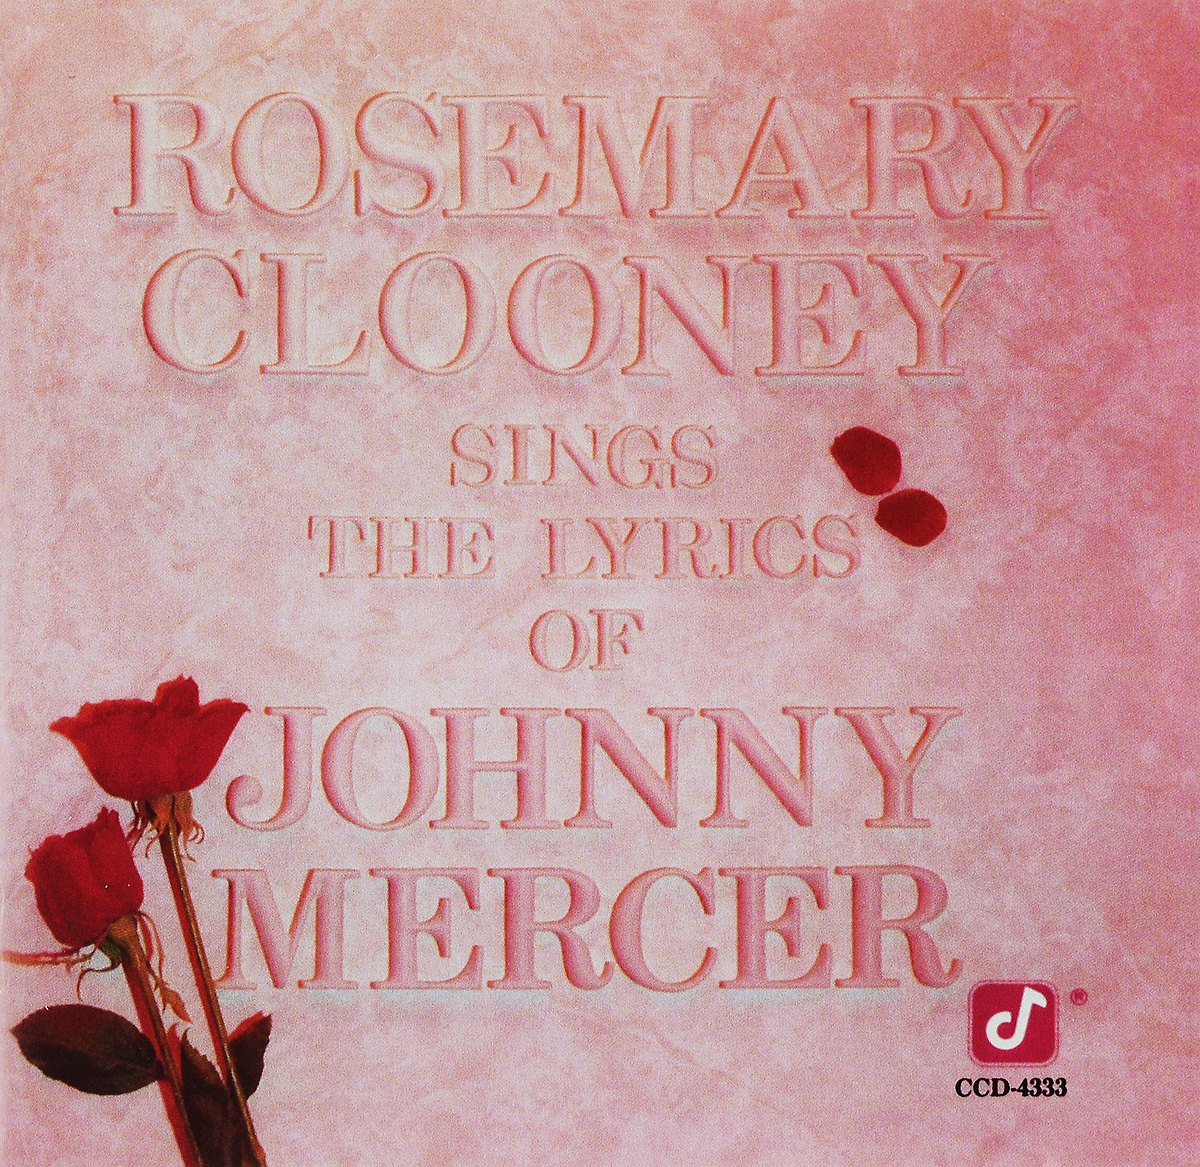 Фото - Джонни Мерсер Johnny Mercer. Rosemary Clooney.Sings The Lyrics Of Johnny Mercer mercer culinary mercer rules culinary mini